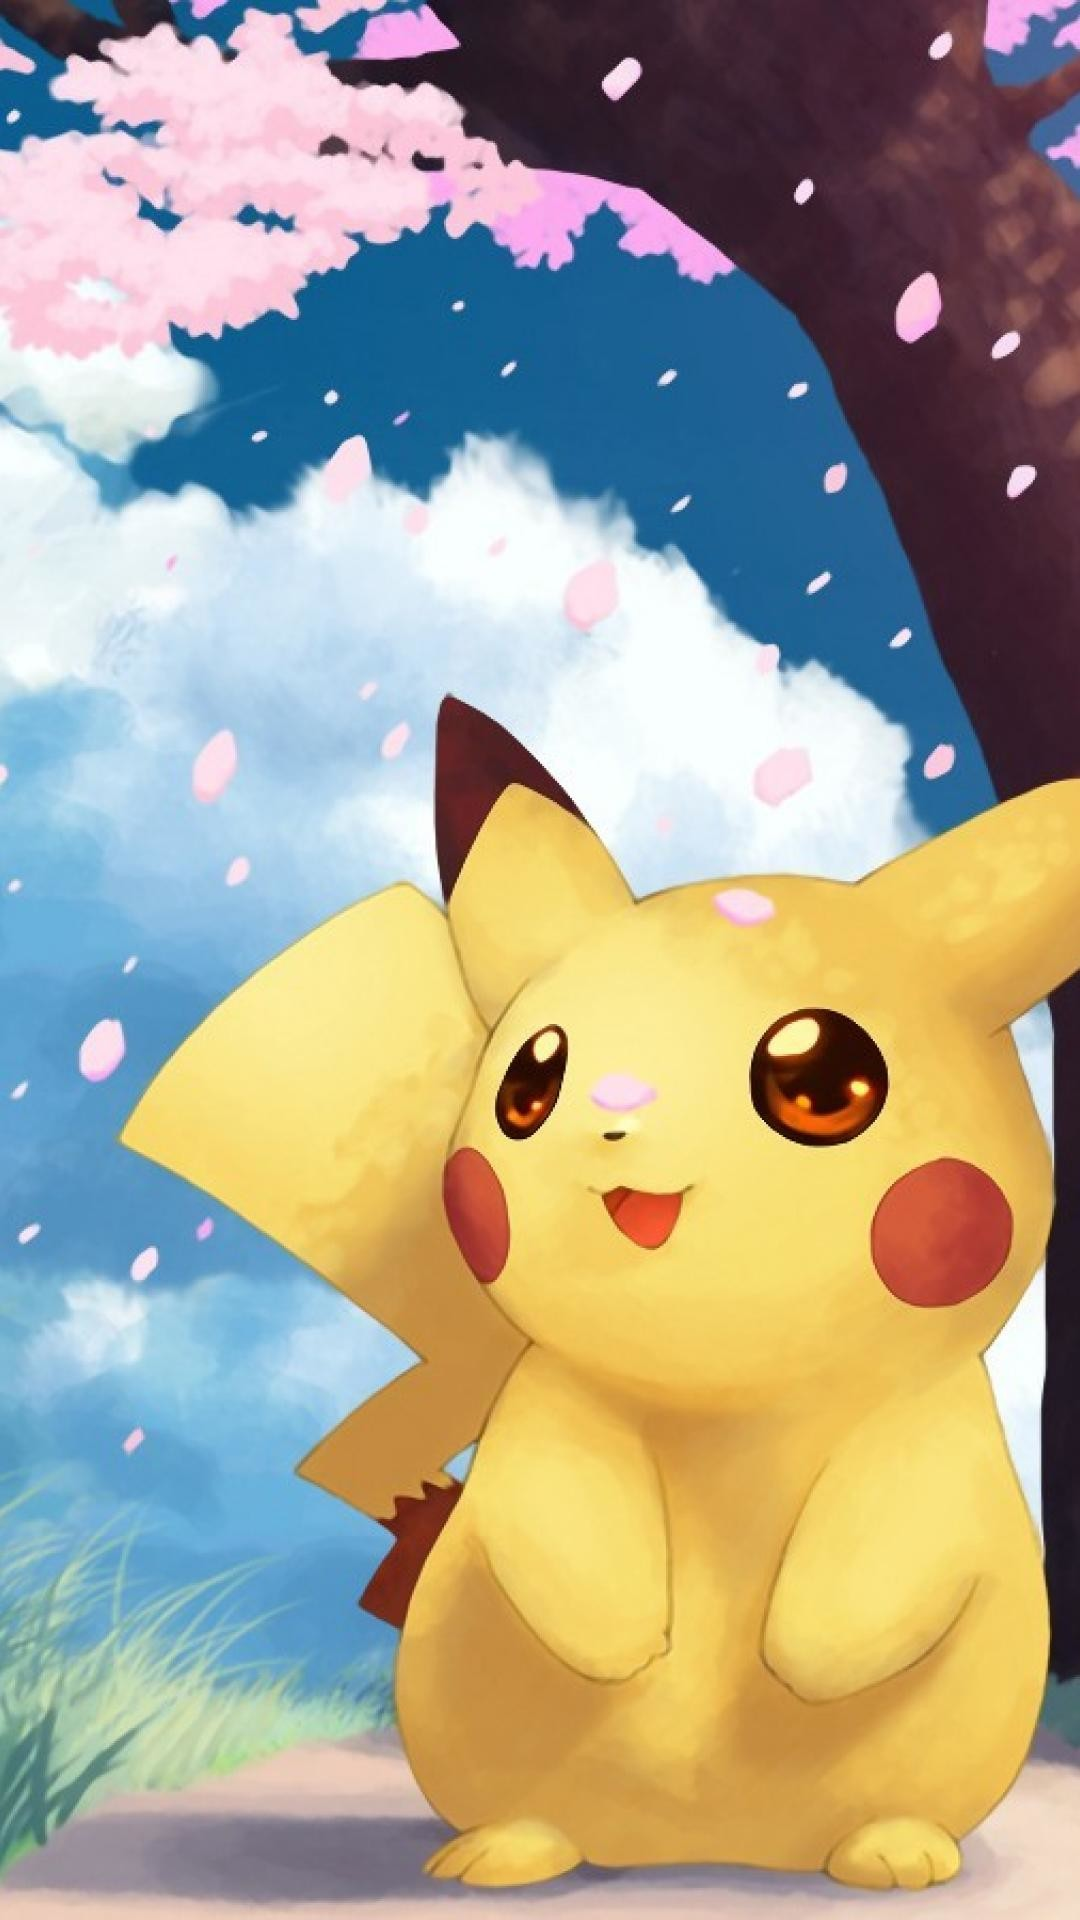 1080x1920 Adorable Pokemon wallpapers and gifs